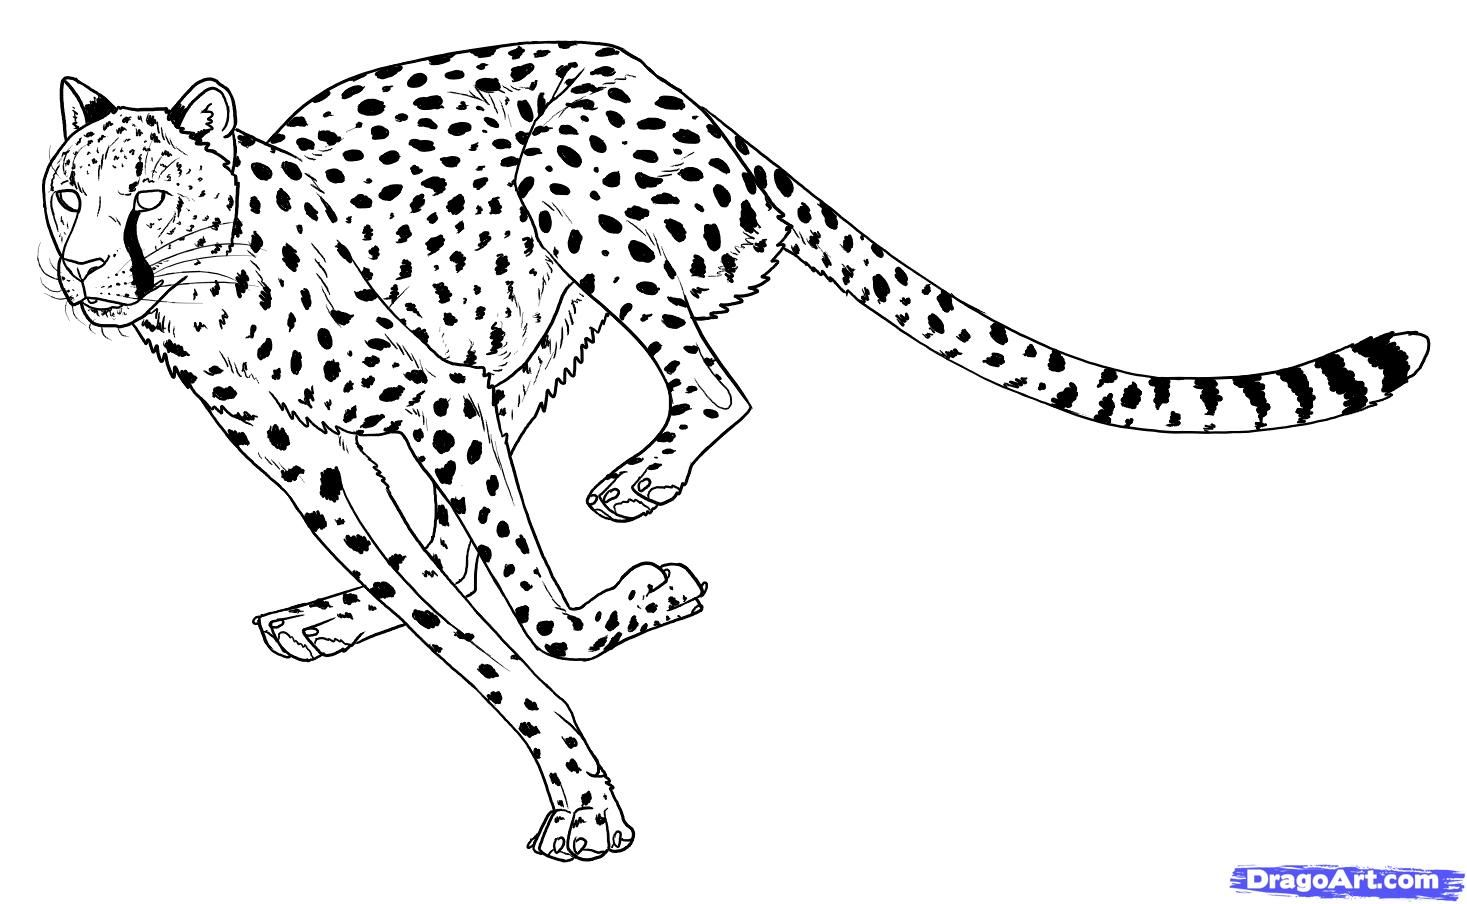 how to draw a cheetah step by step how to draw a cheetah drawingforallnet step how by a cheetah draw to step